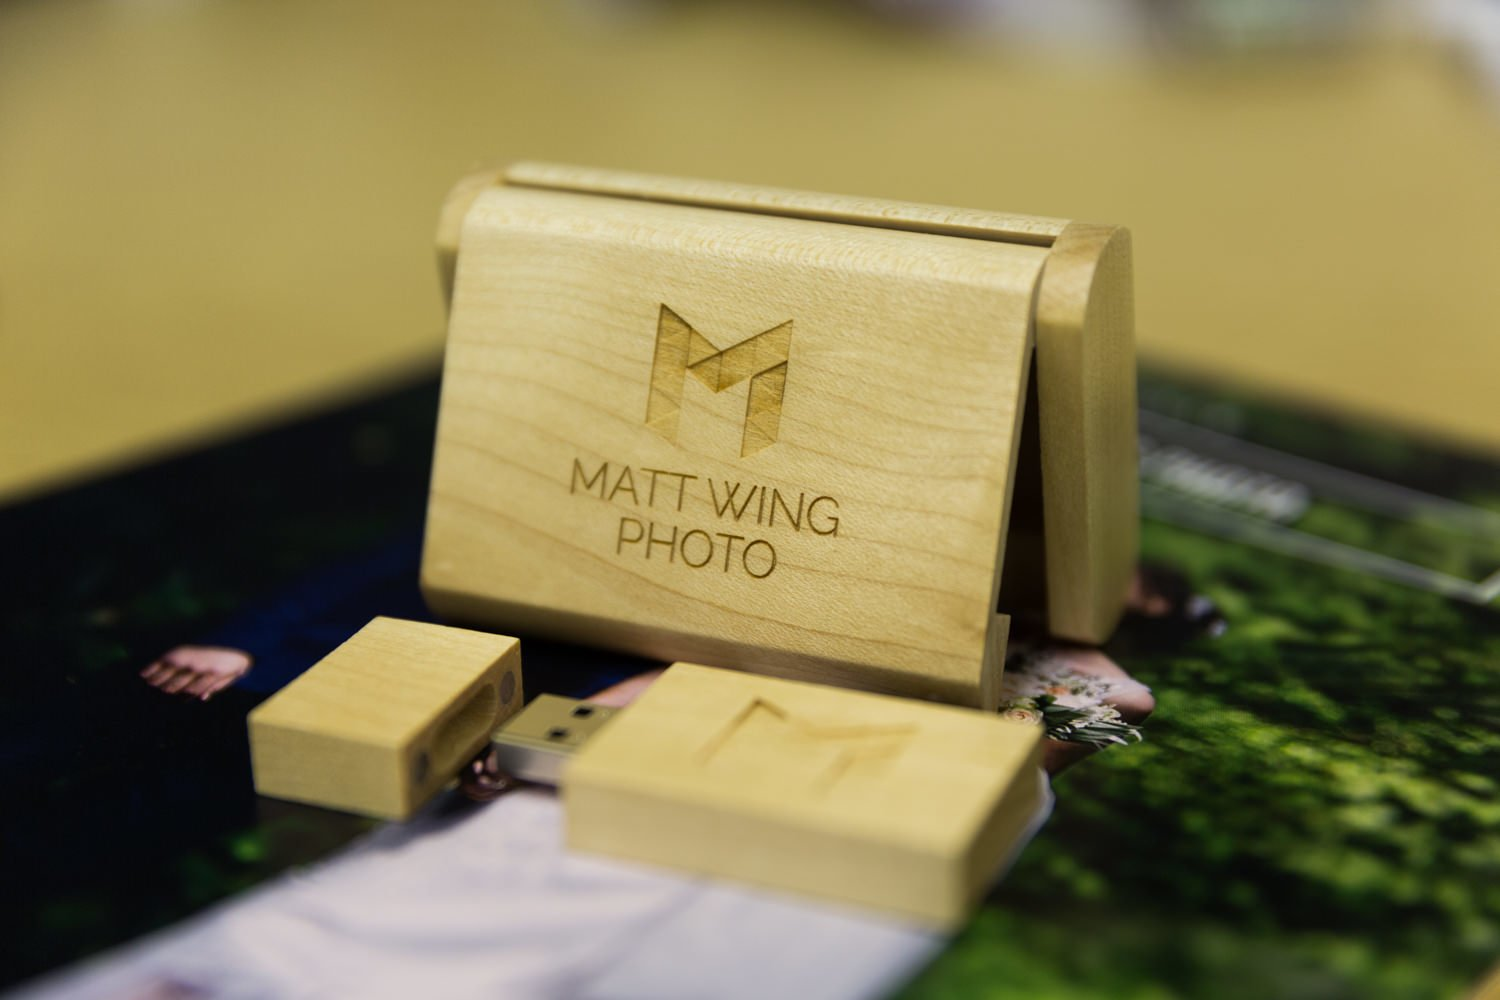 matt wing usb drive